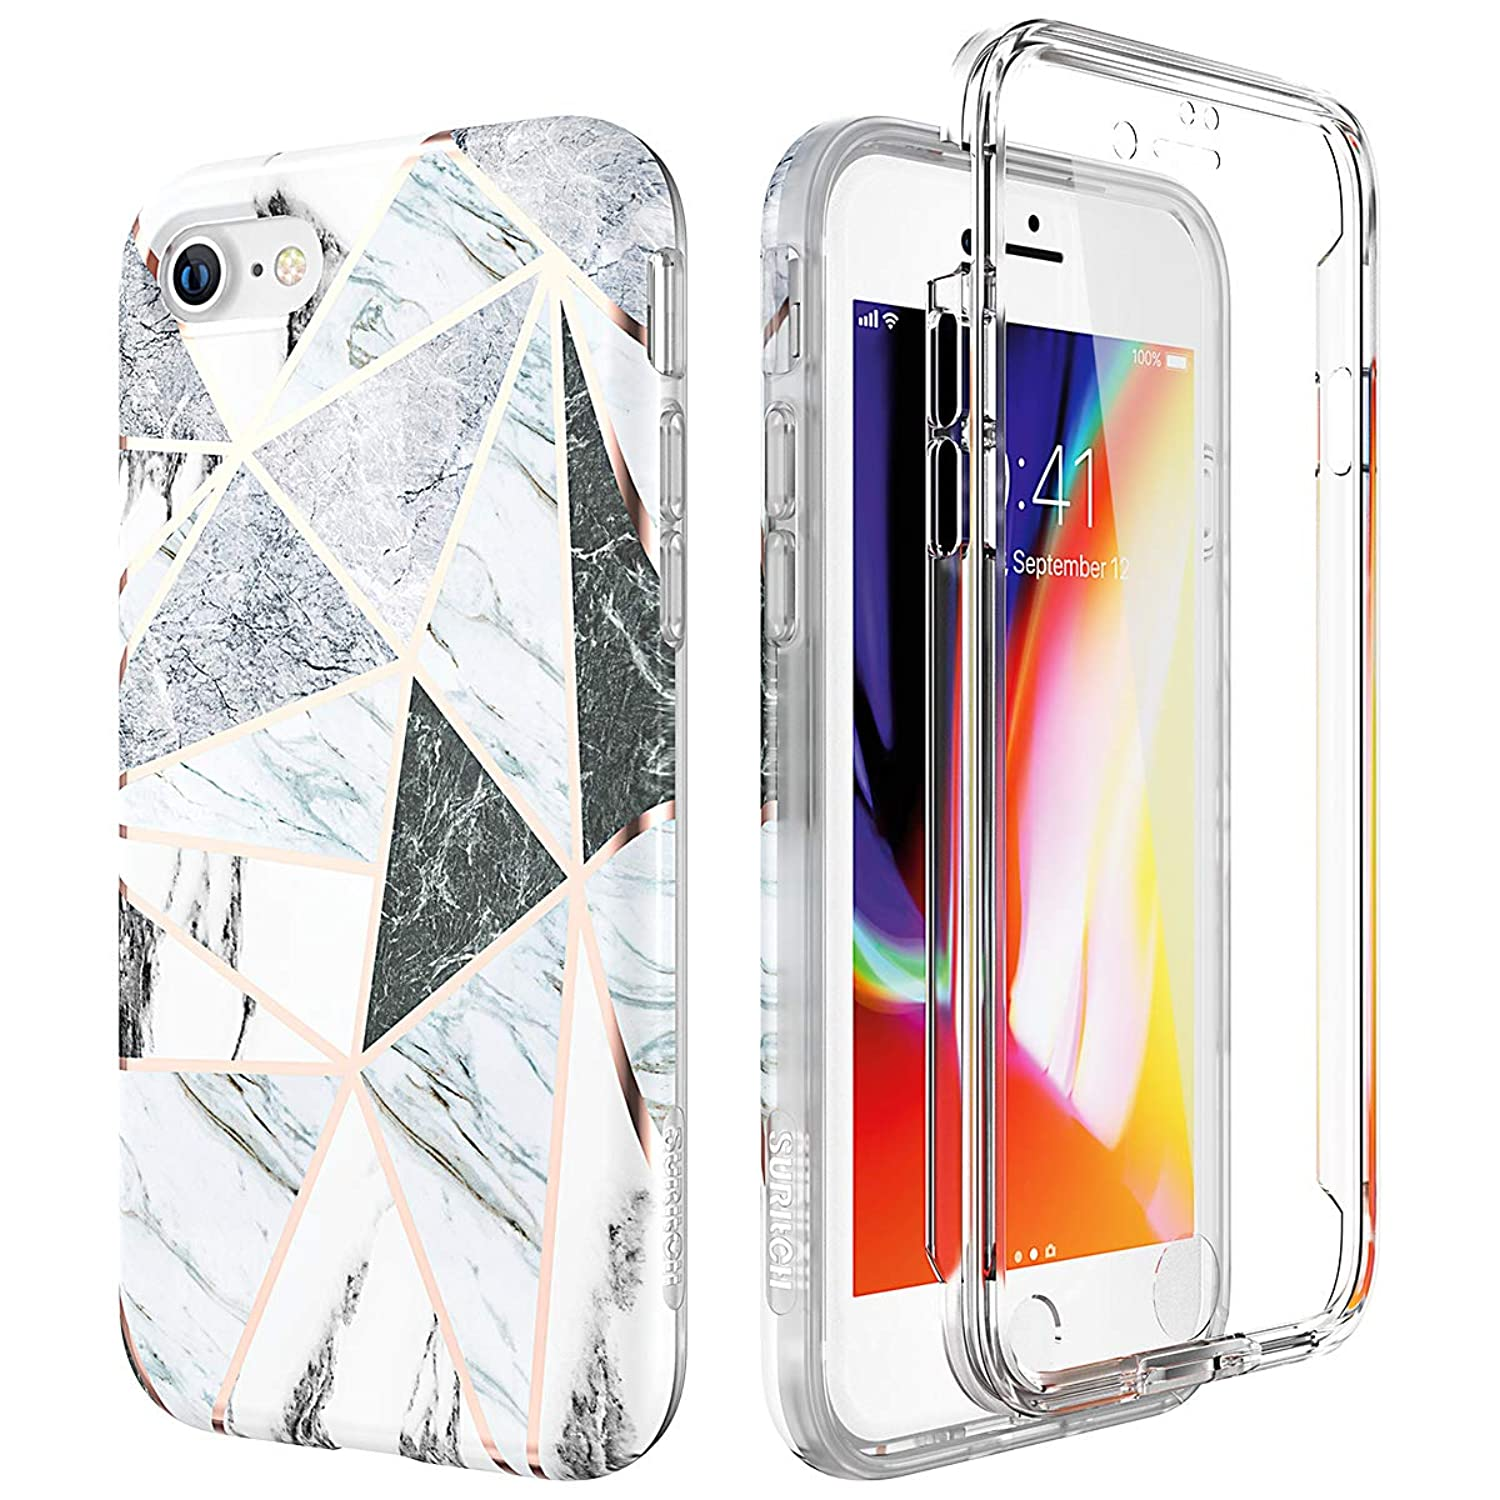 SURITCH Marble iPhone 8 Case/iPhone 7 Case, [Built-in Screen Protector] Full-Body Protection Hard PC Bumper + Glossy Soft TPU Rubber Gel Shockproof Cover Compatible with Apple 7/8- Gray/White